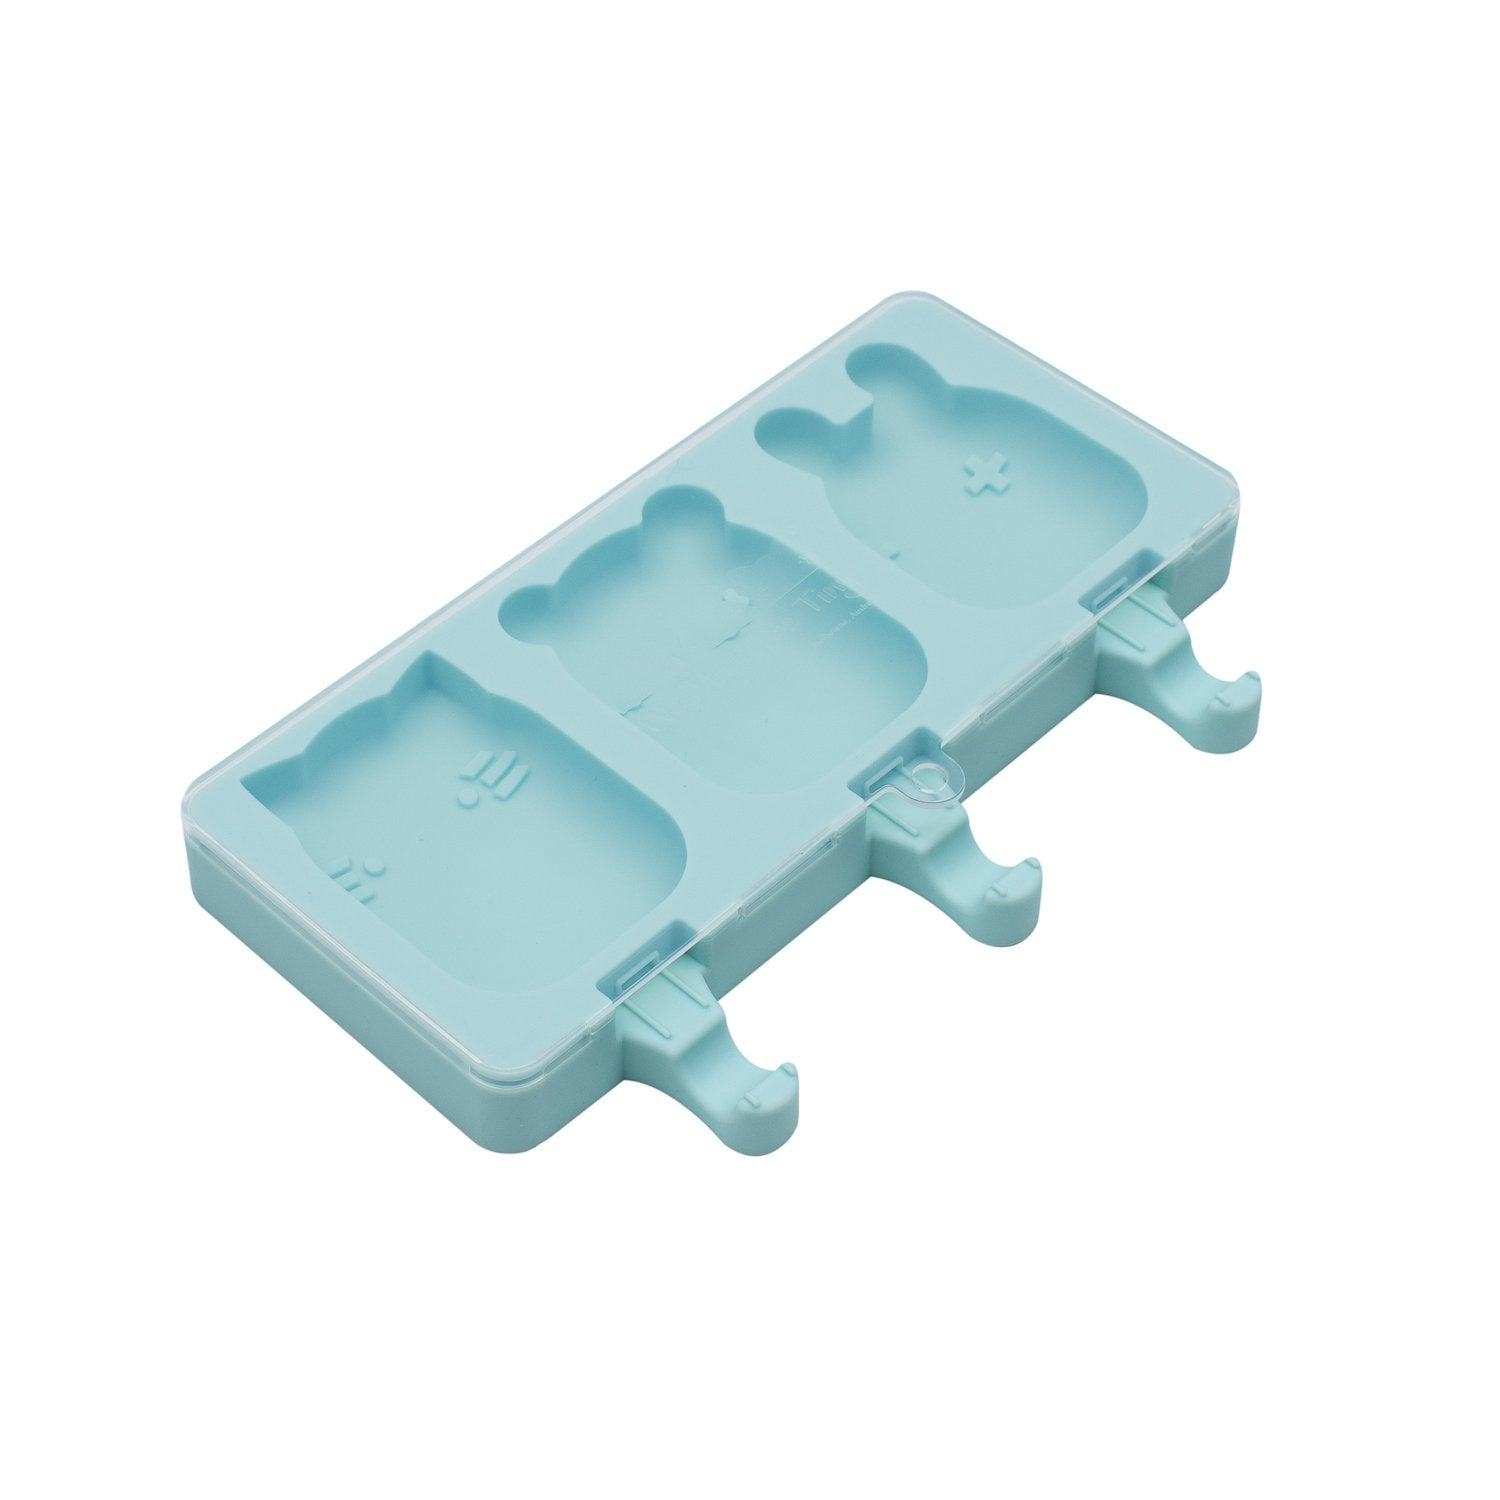 Ice Pop Mold - Minty Green